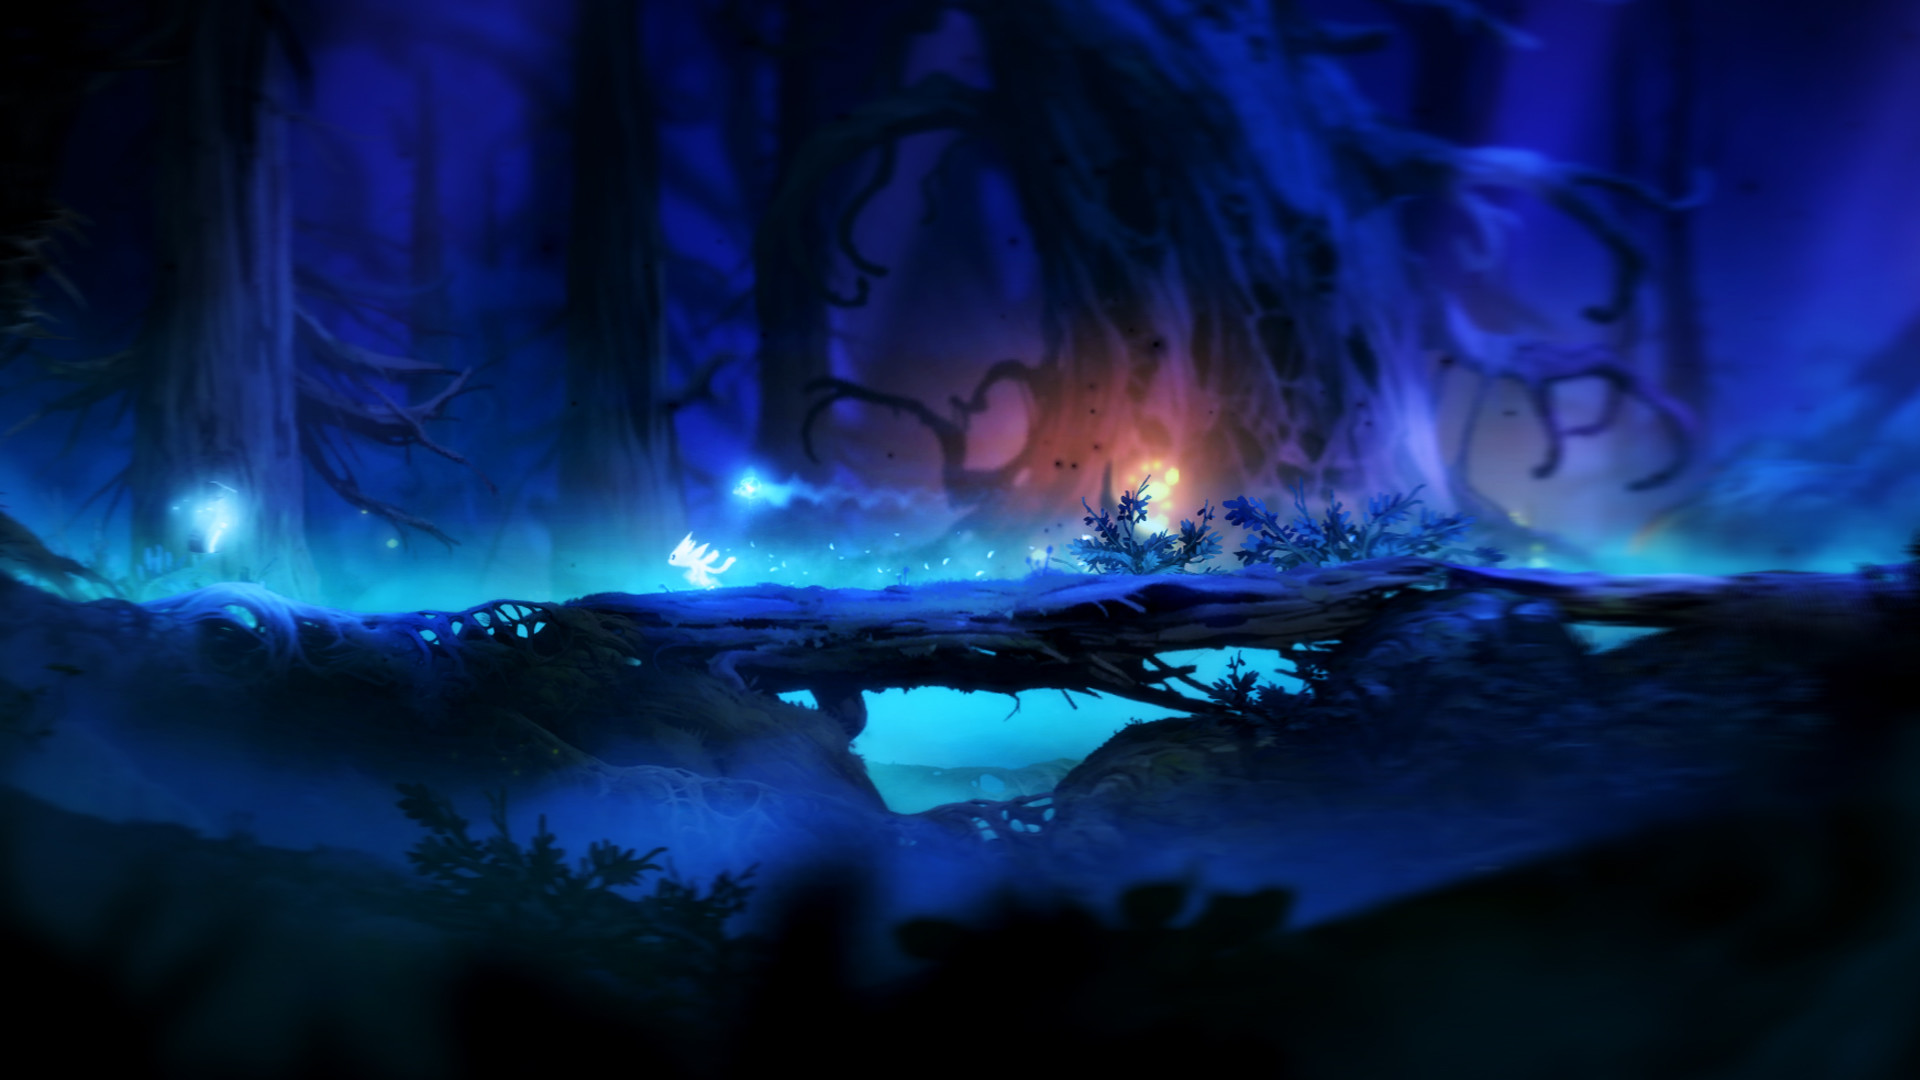 Ori and the Blind Forest: Definitive Edition image 3